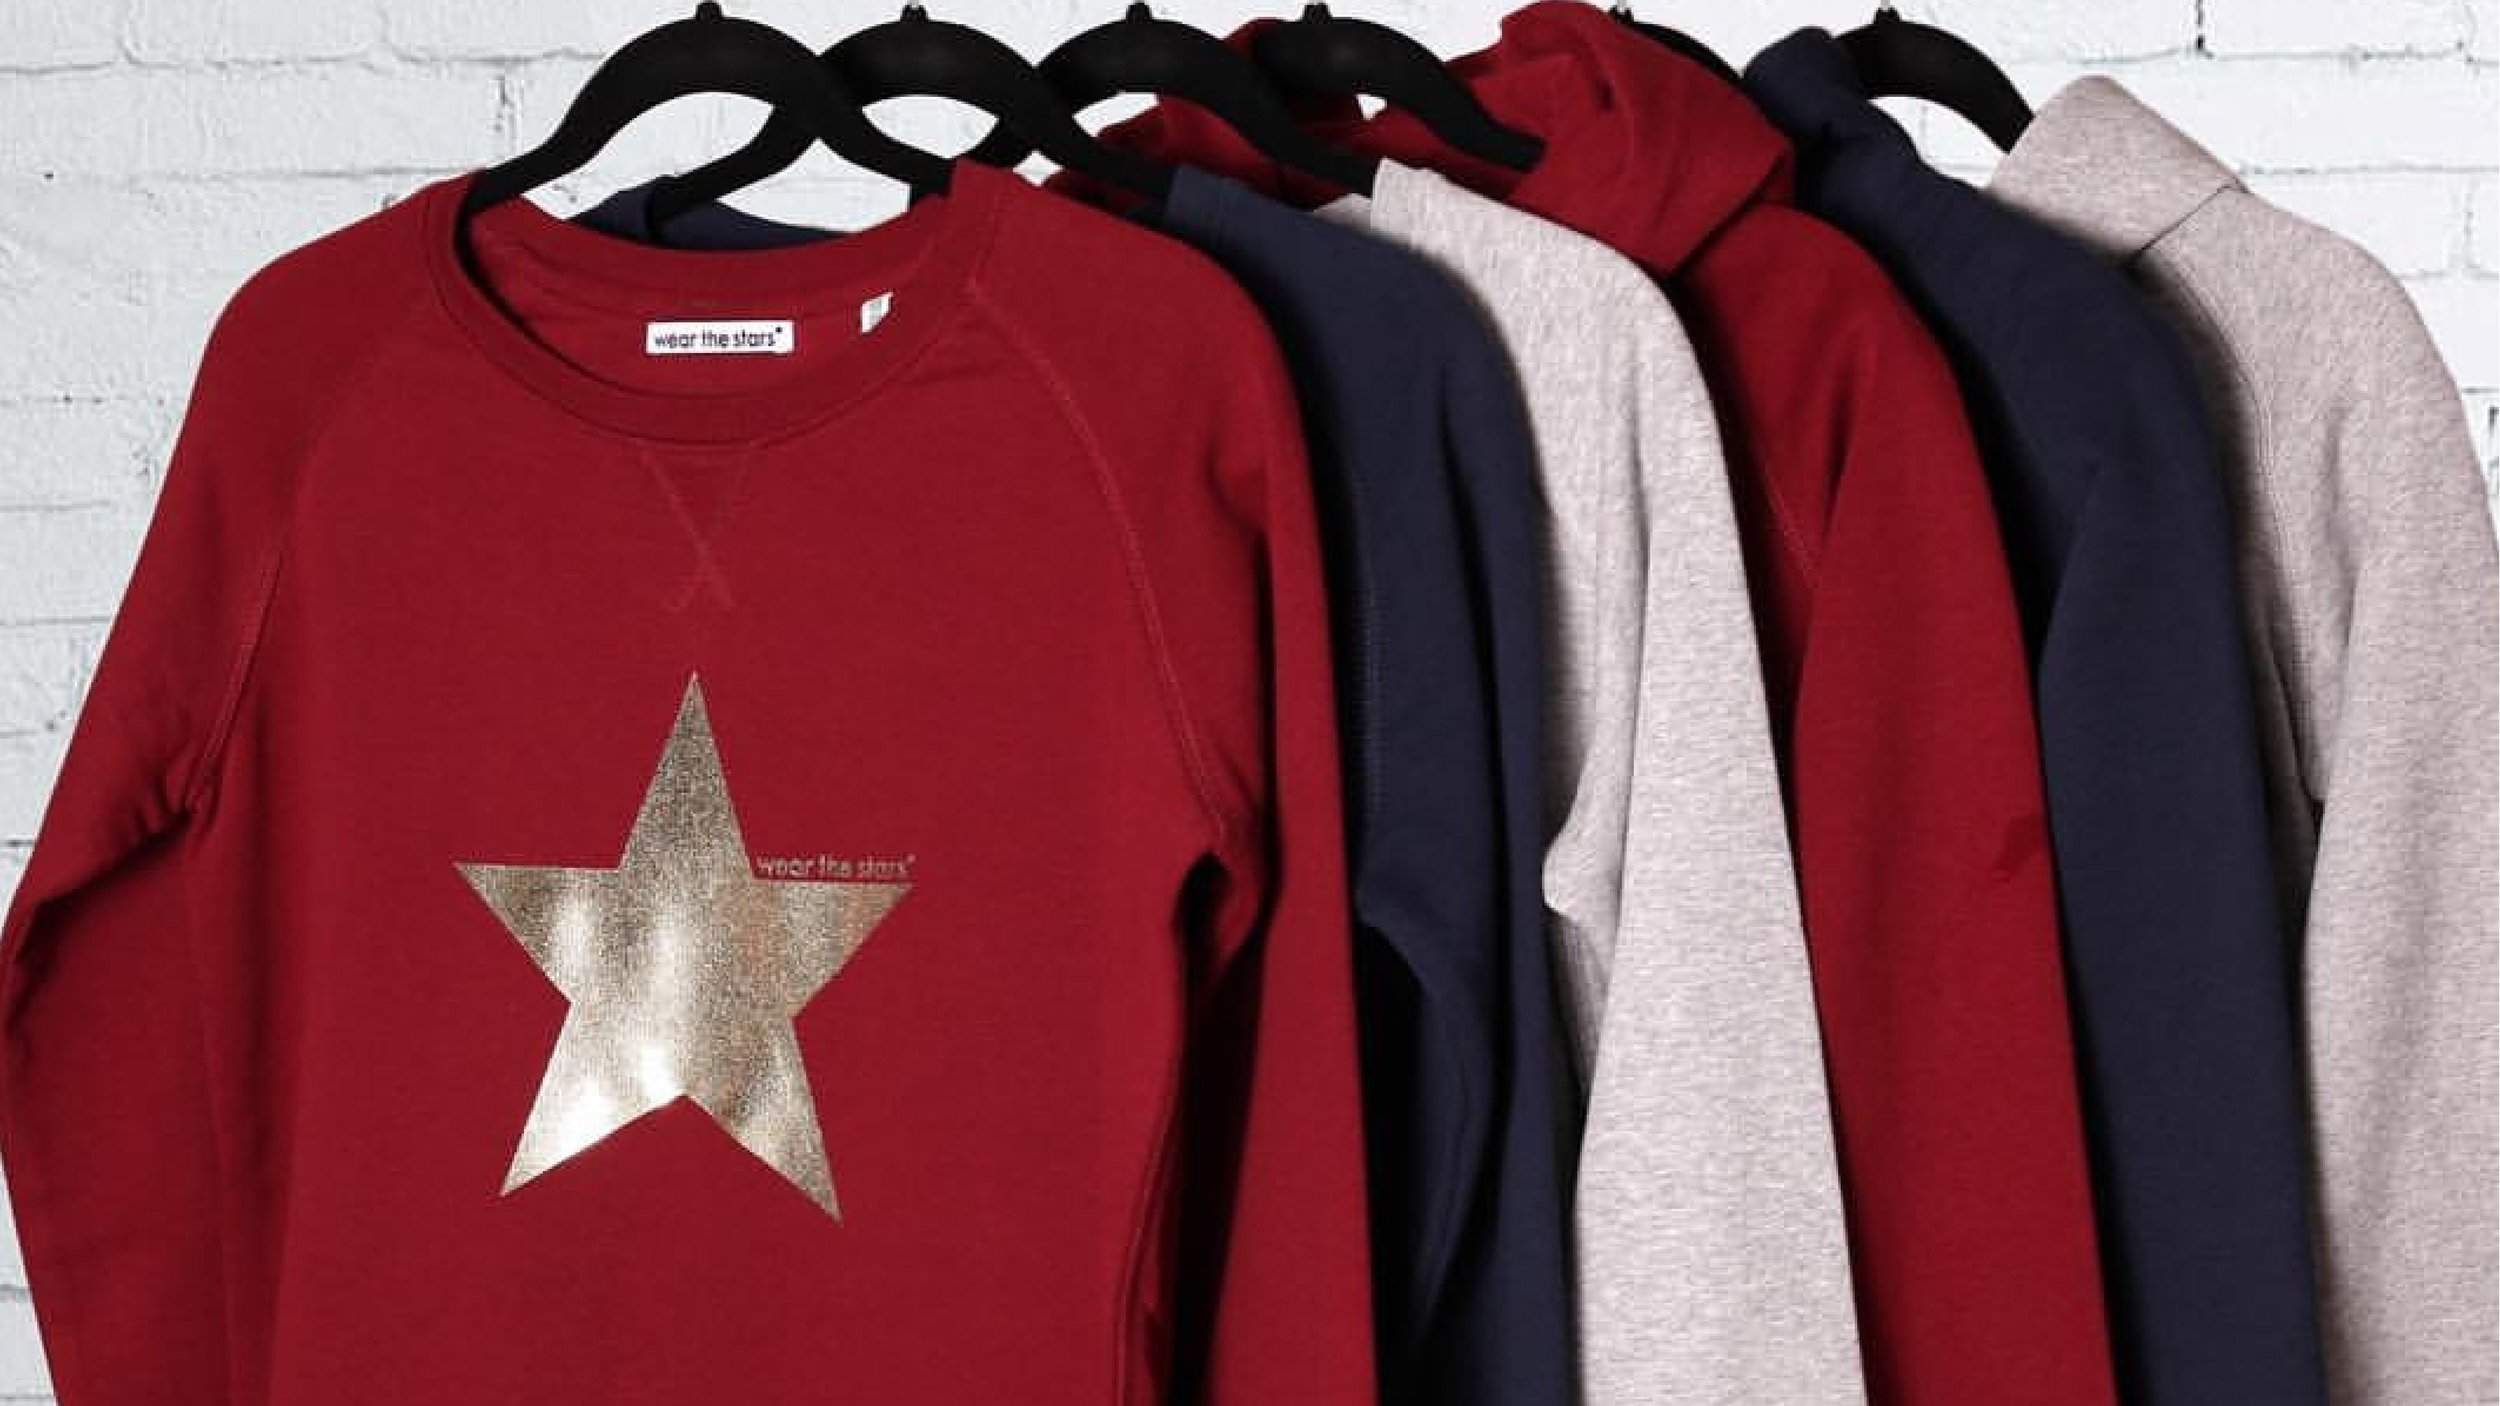 WEAR THE STARS CASE STUDY